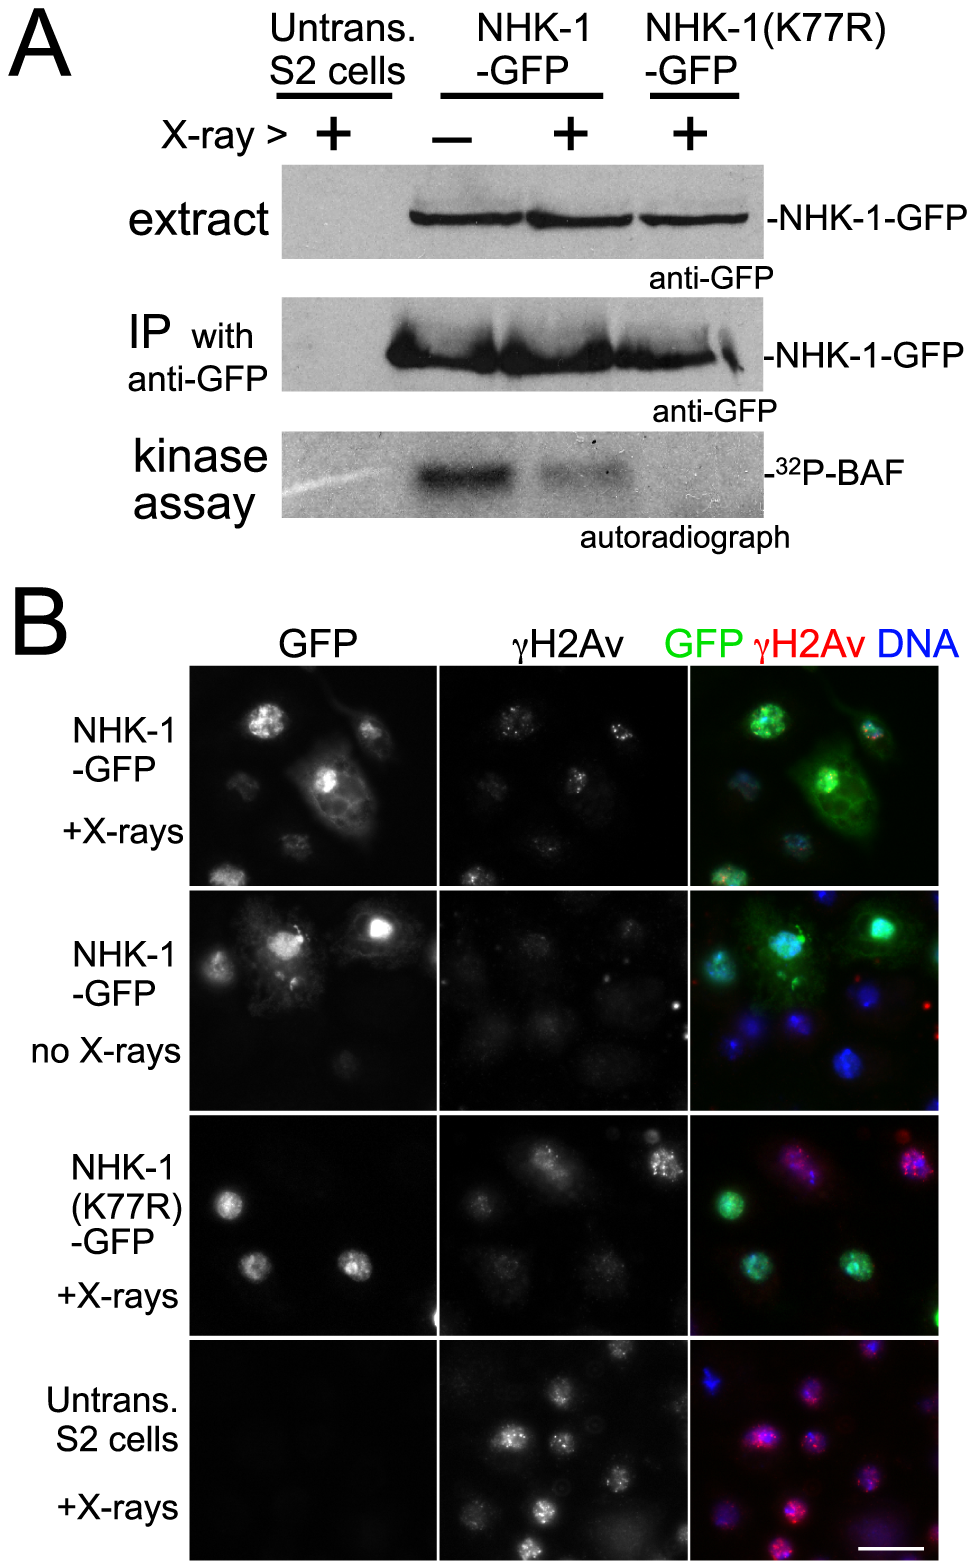 DSBs suppress NHK-1 activity in S2 cells.